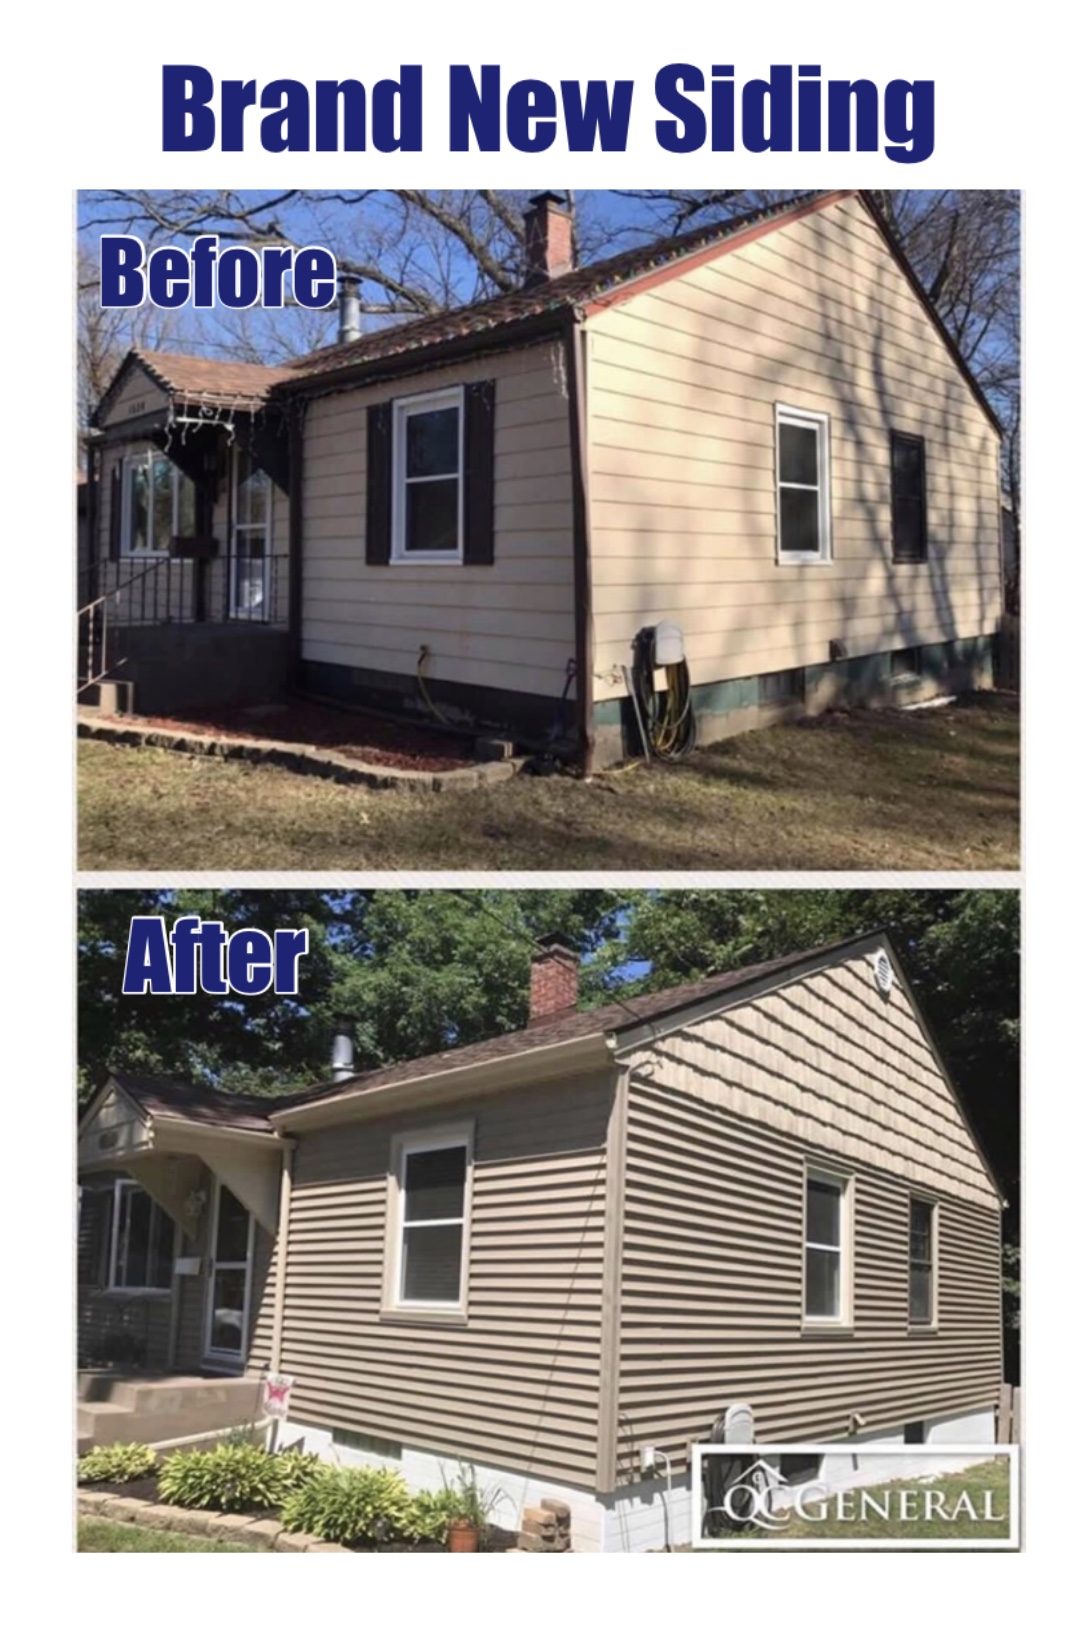 Images of new siding work completed by QC General, highlighting how the siding is now sturdier and more pleasing to look at.